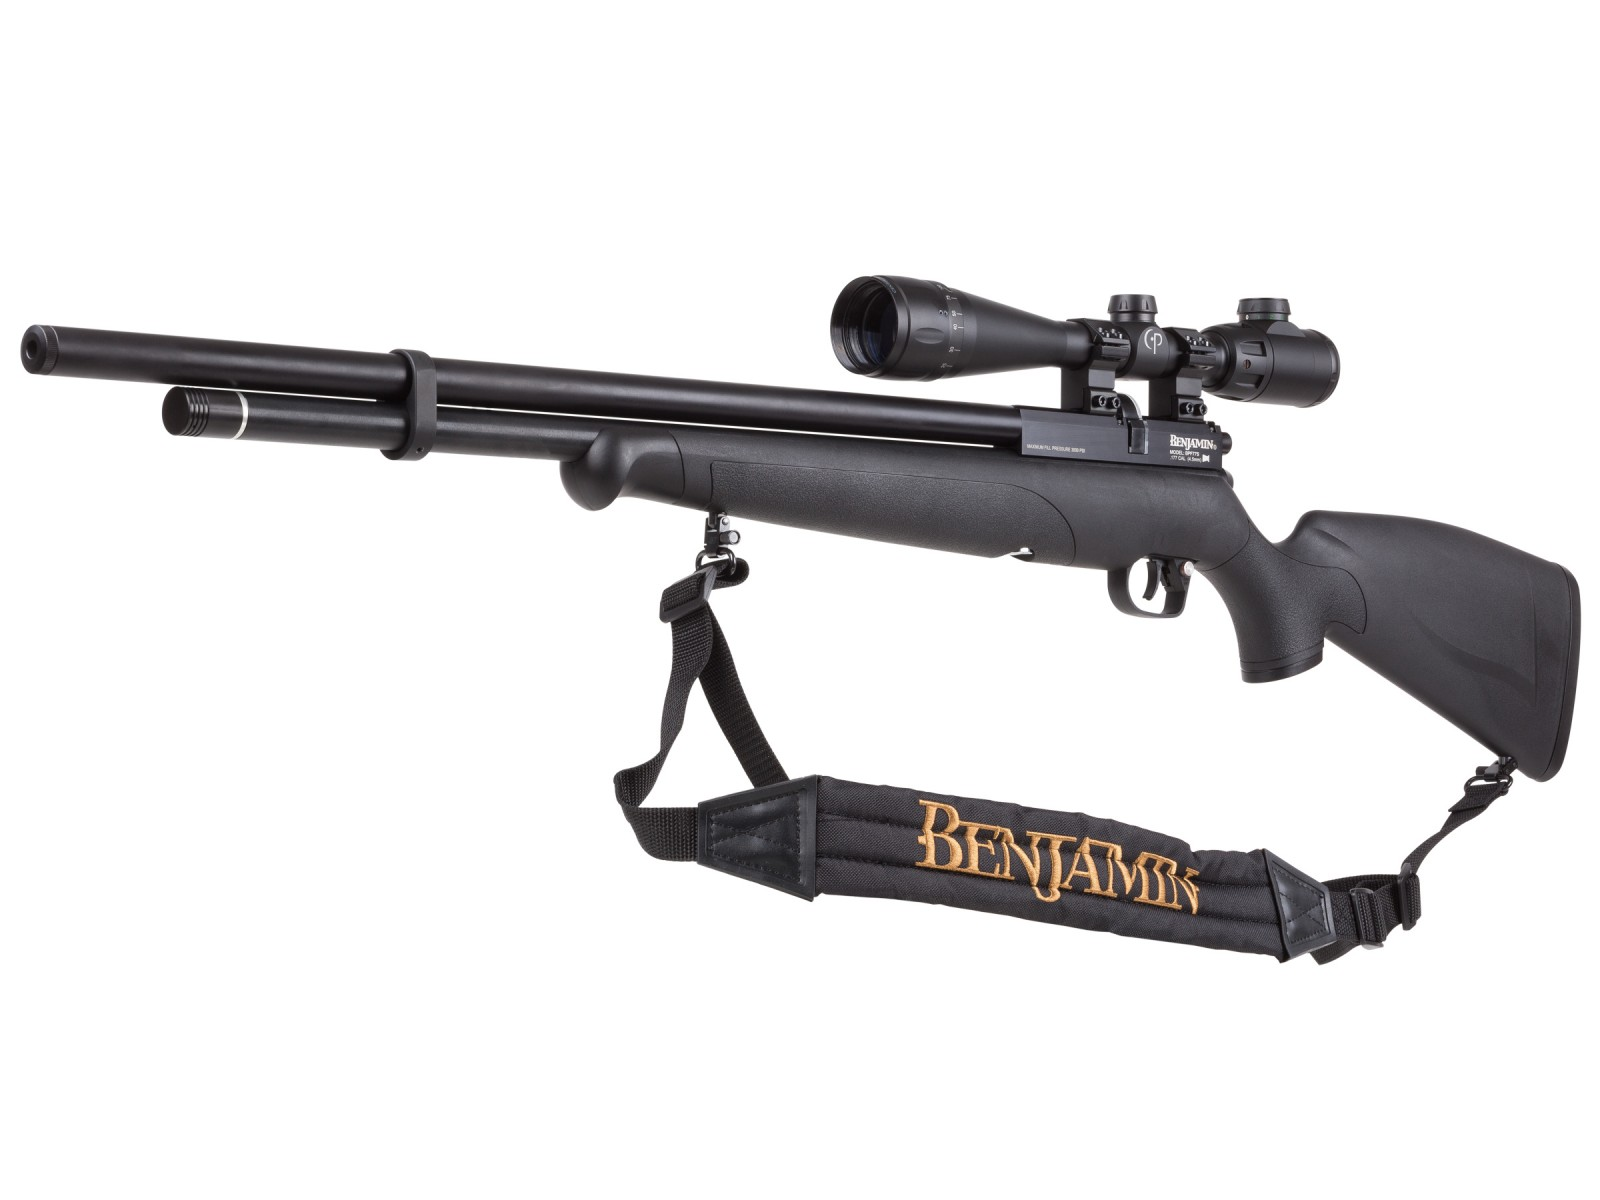 Cheap Benjamin Fortitude Combo, Regulated PCP Air Rifle 0.177